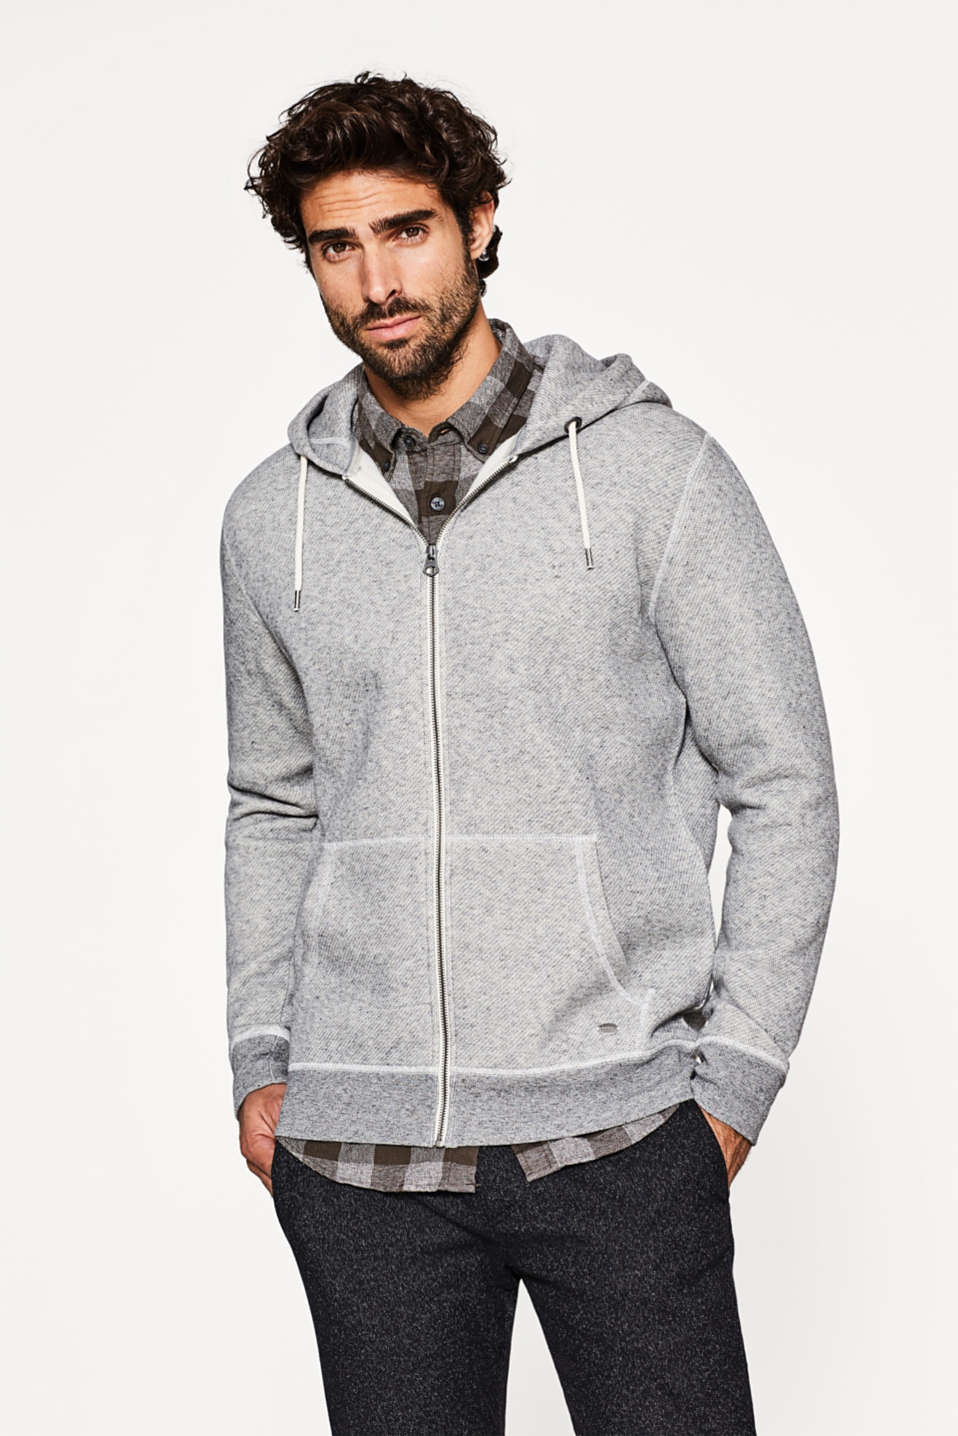 Esprit - Hoodie with a soft, wintry inner surface